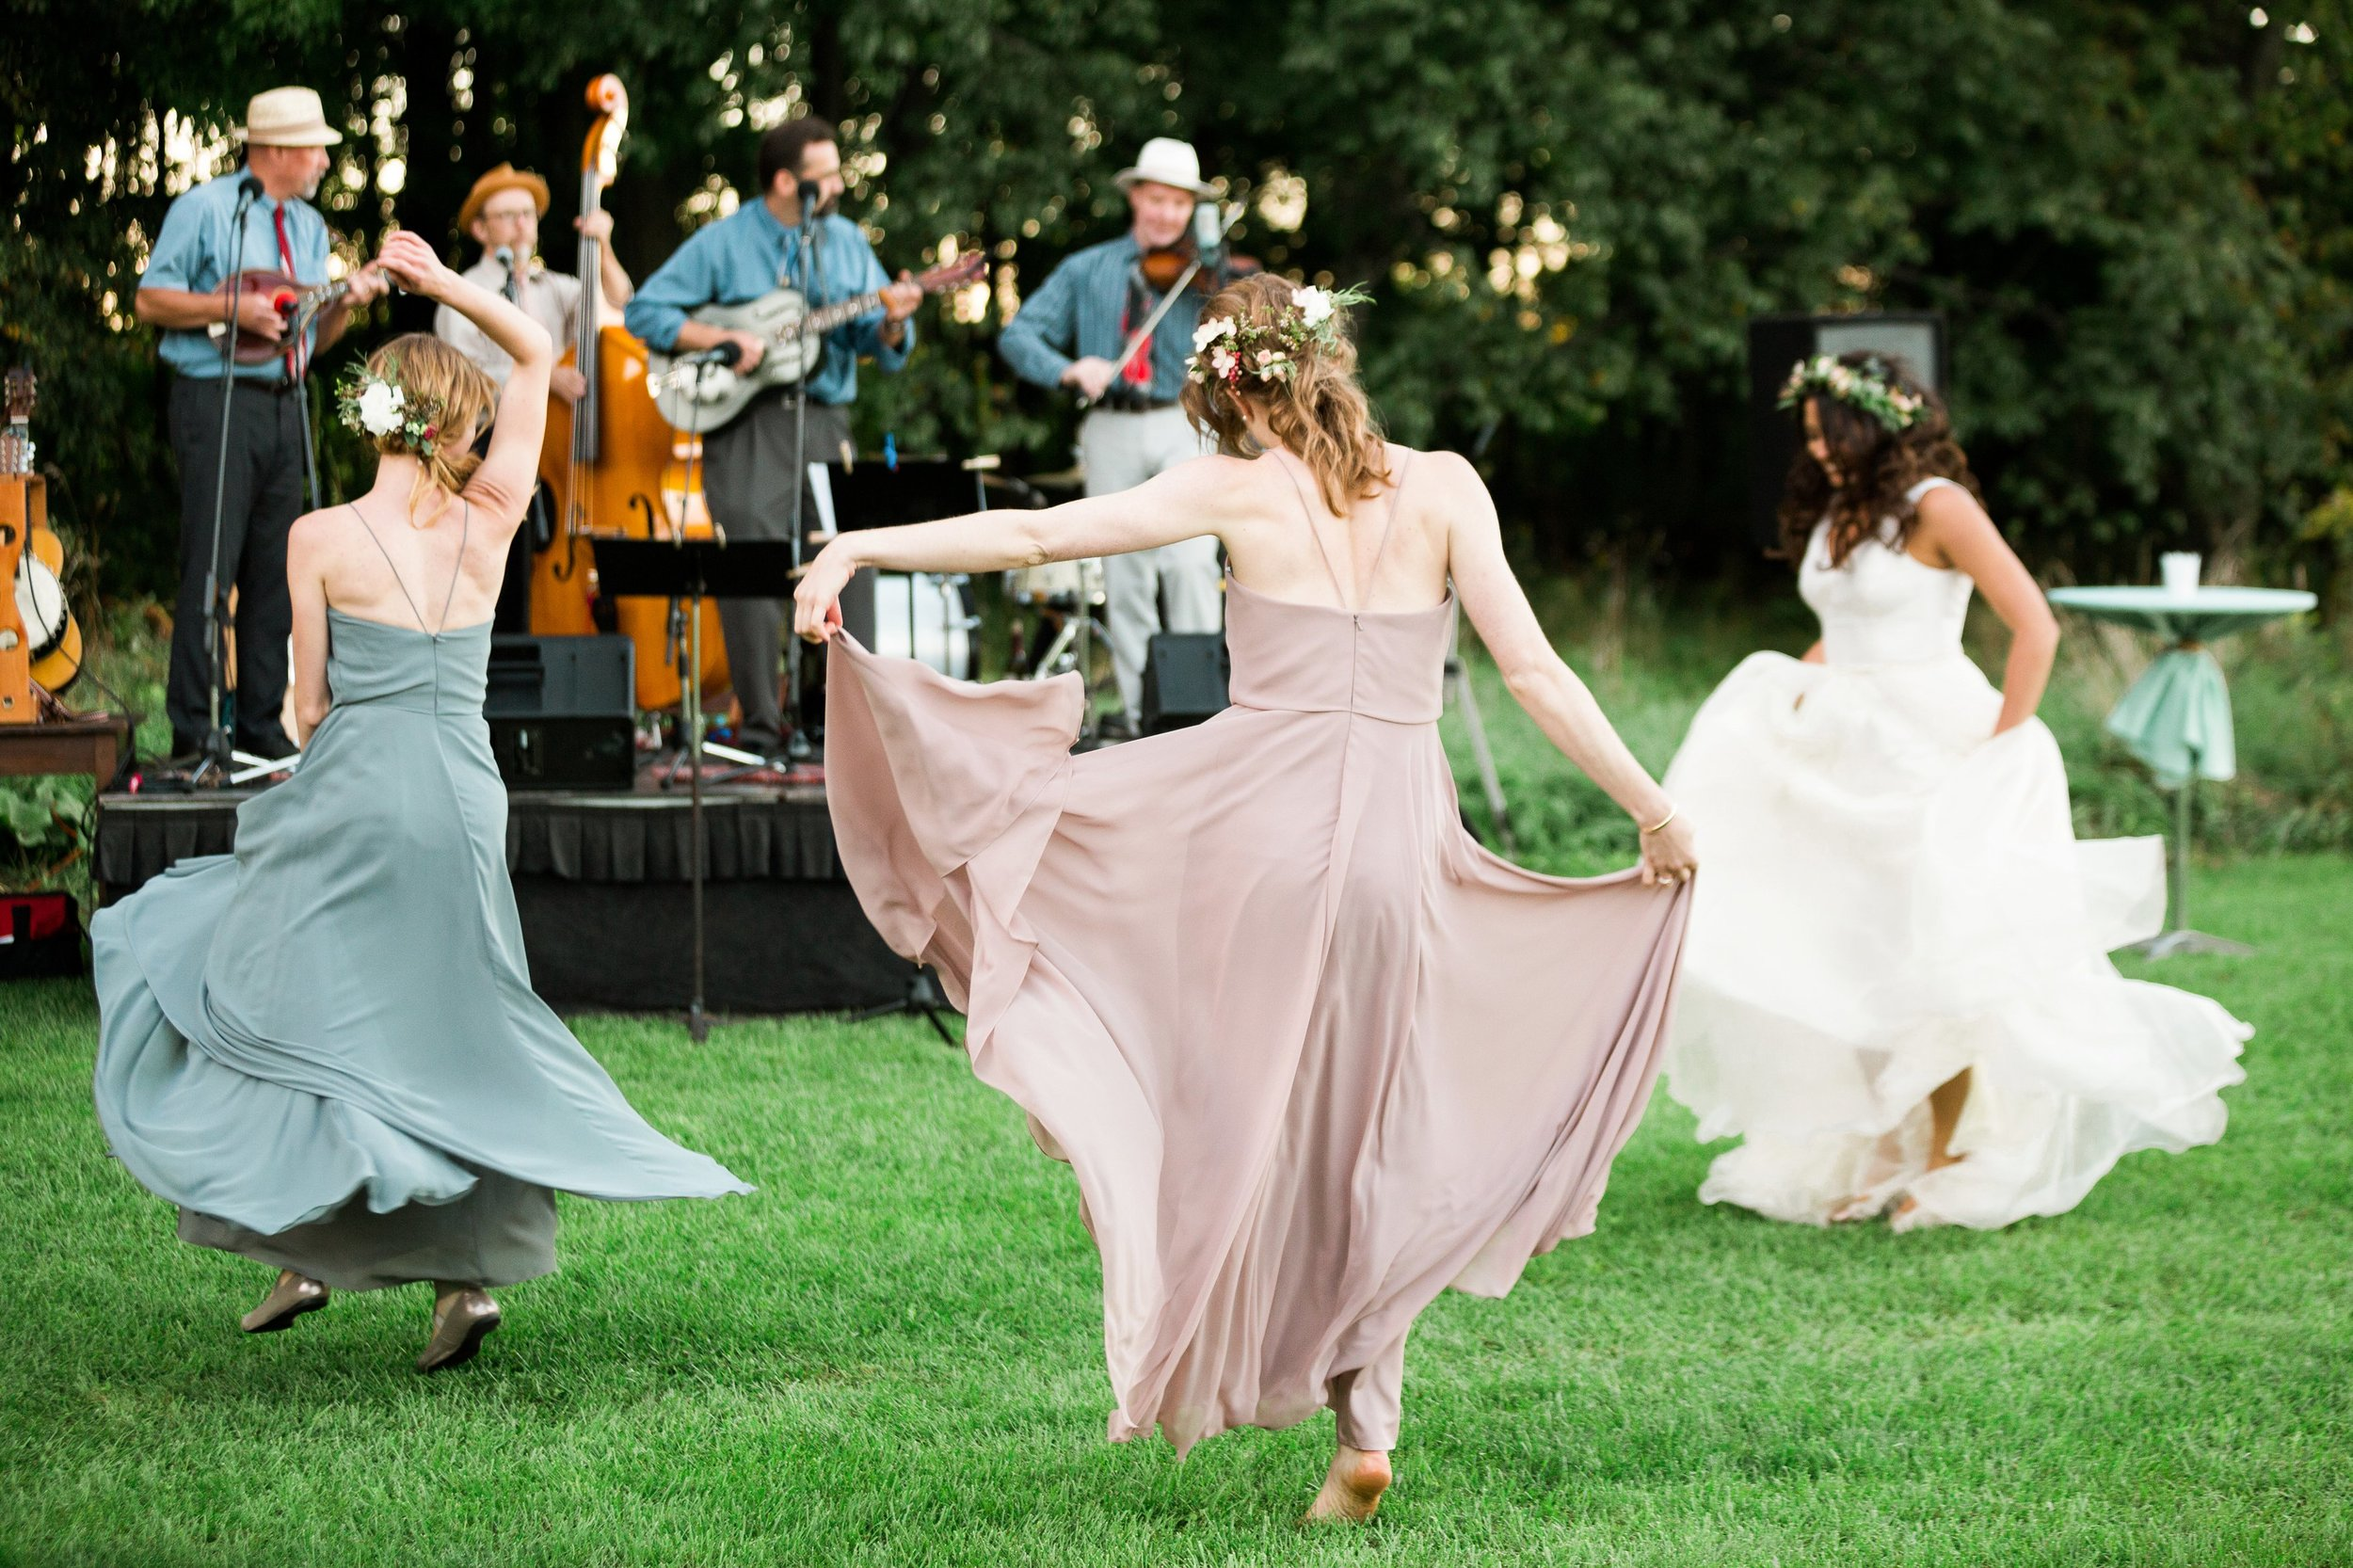 bridesmaids dancing live band outdoor summer wedding seattle washington.jpg